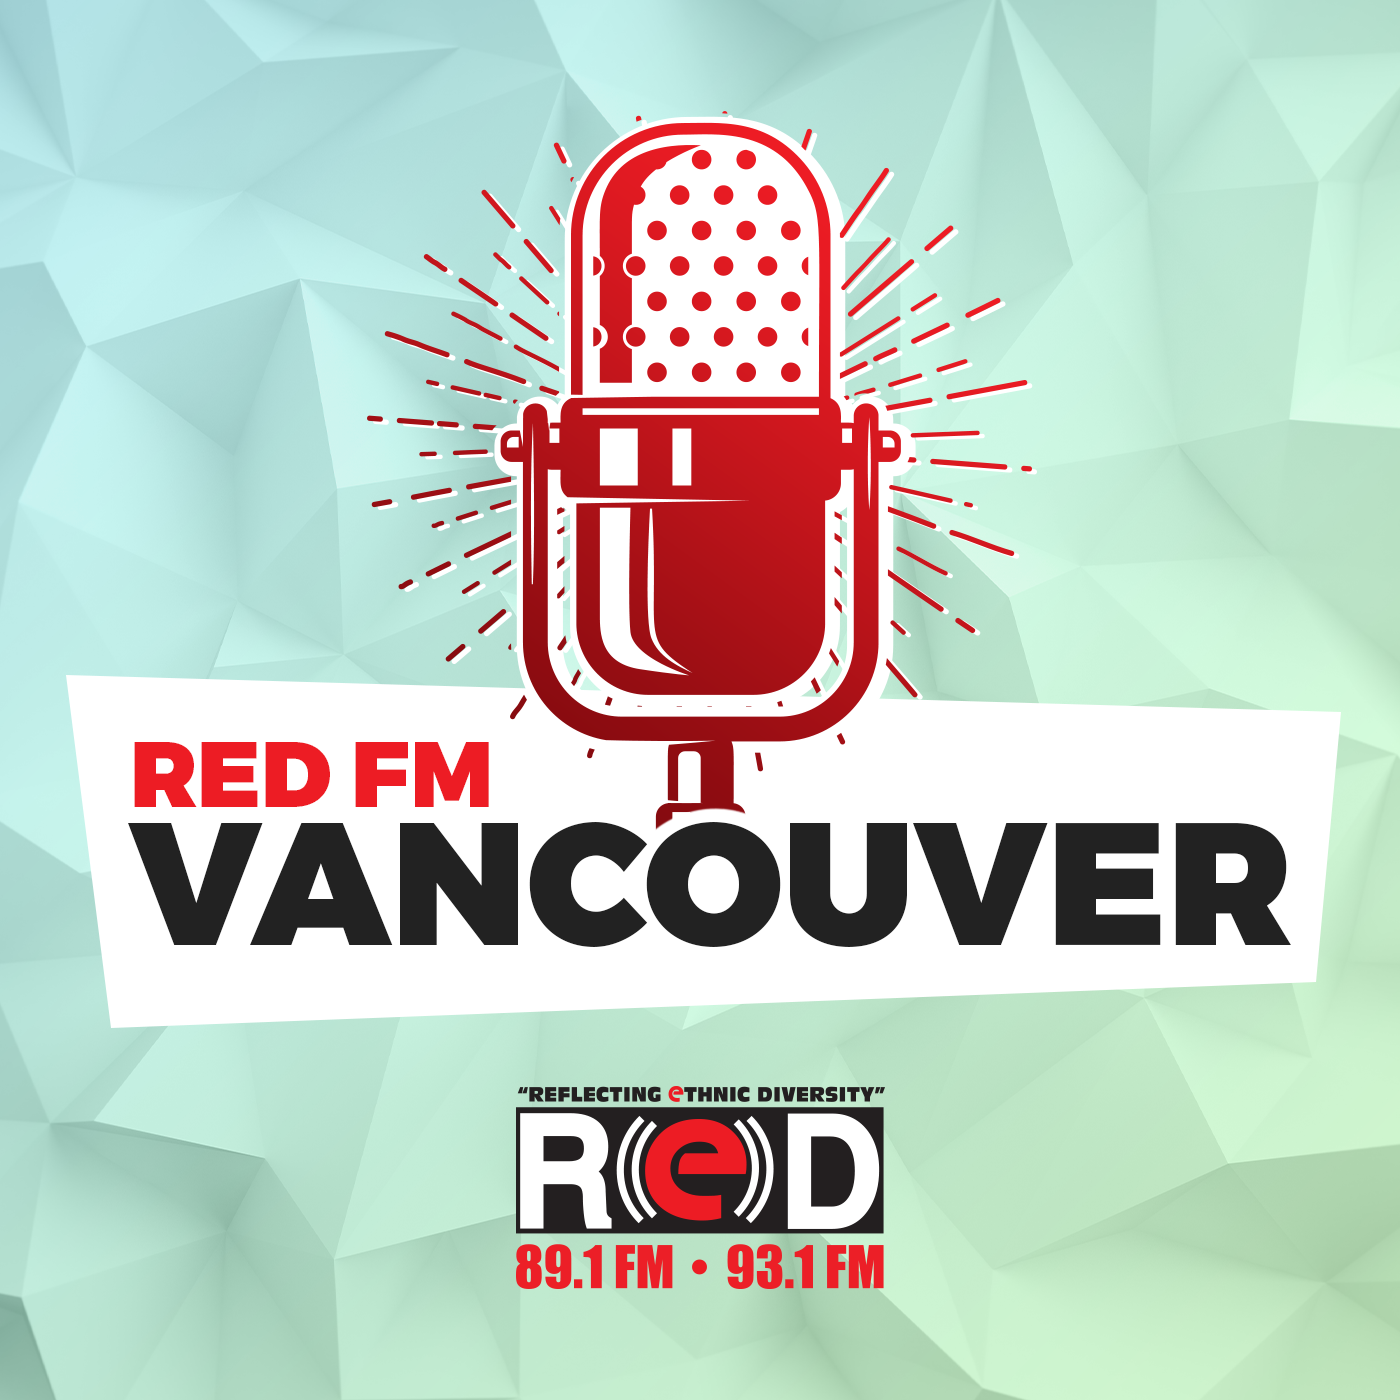 RED FM Vancouver show art